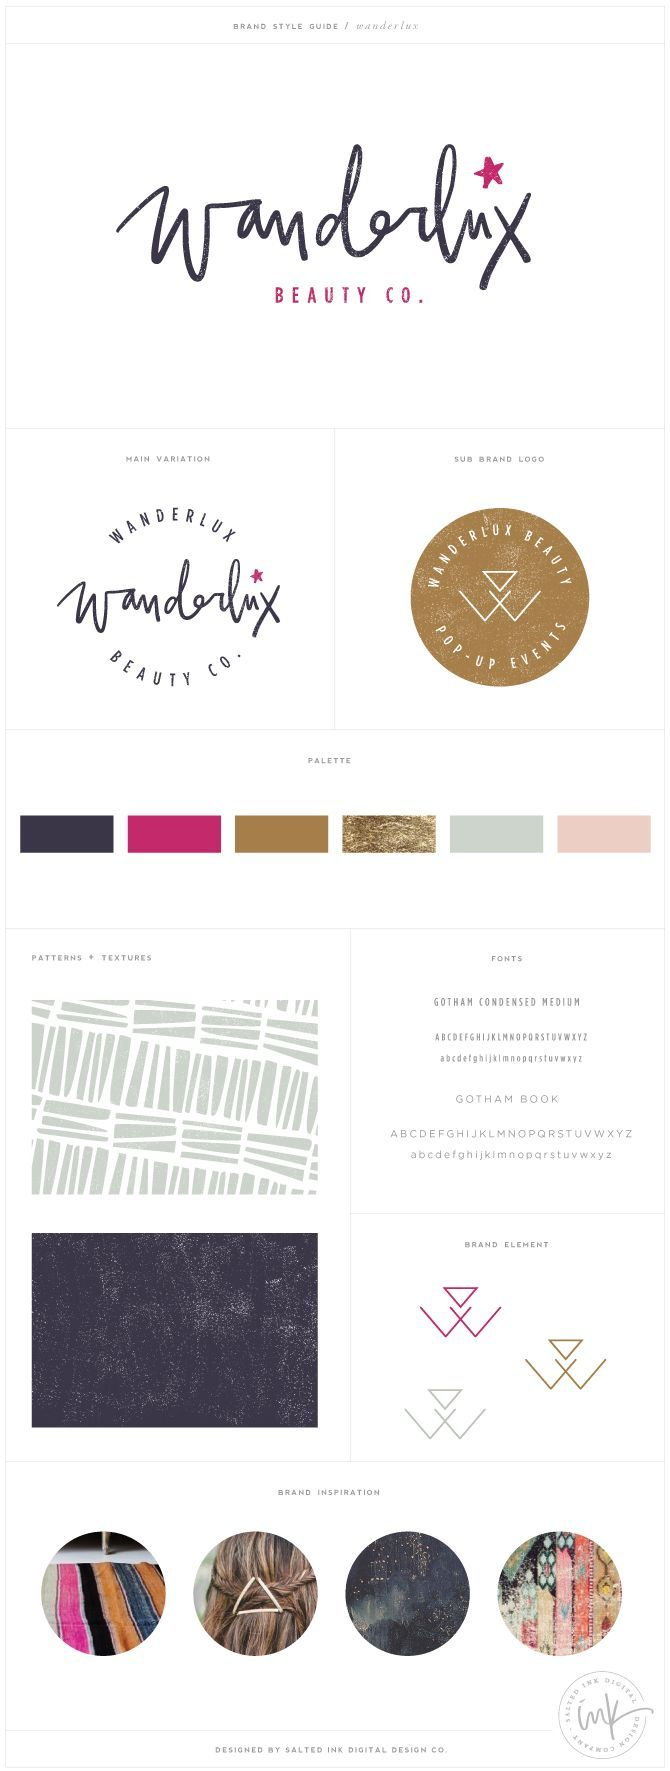 Wanderlux Beauty Co Brand Design by Salted Ink | Brand Stylist and Website Designer | View the full brand design at http://www.saltedink.com